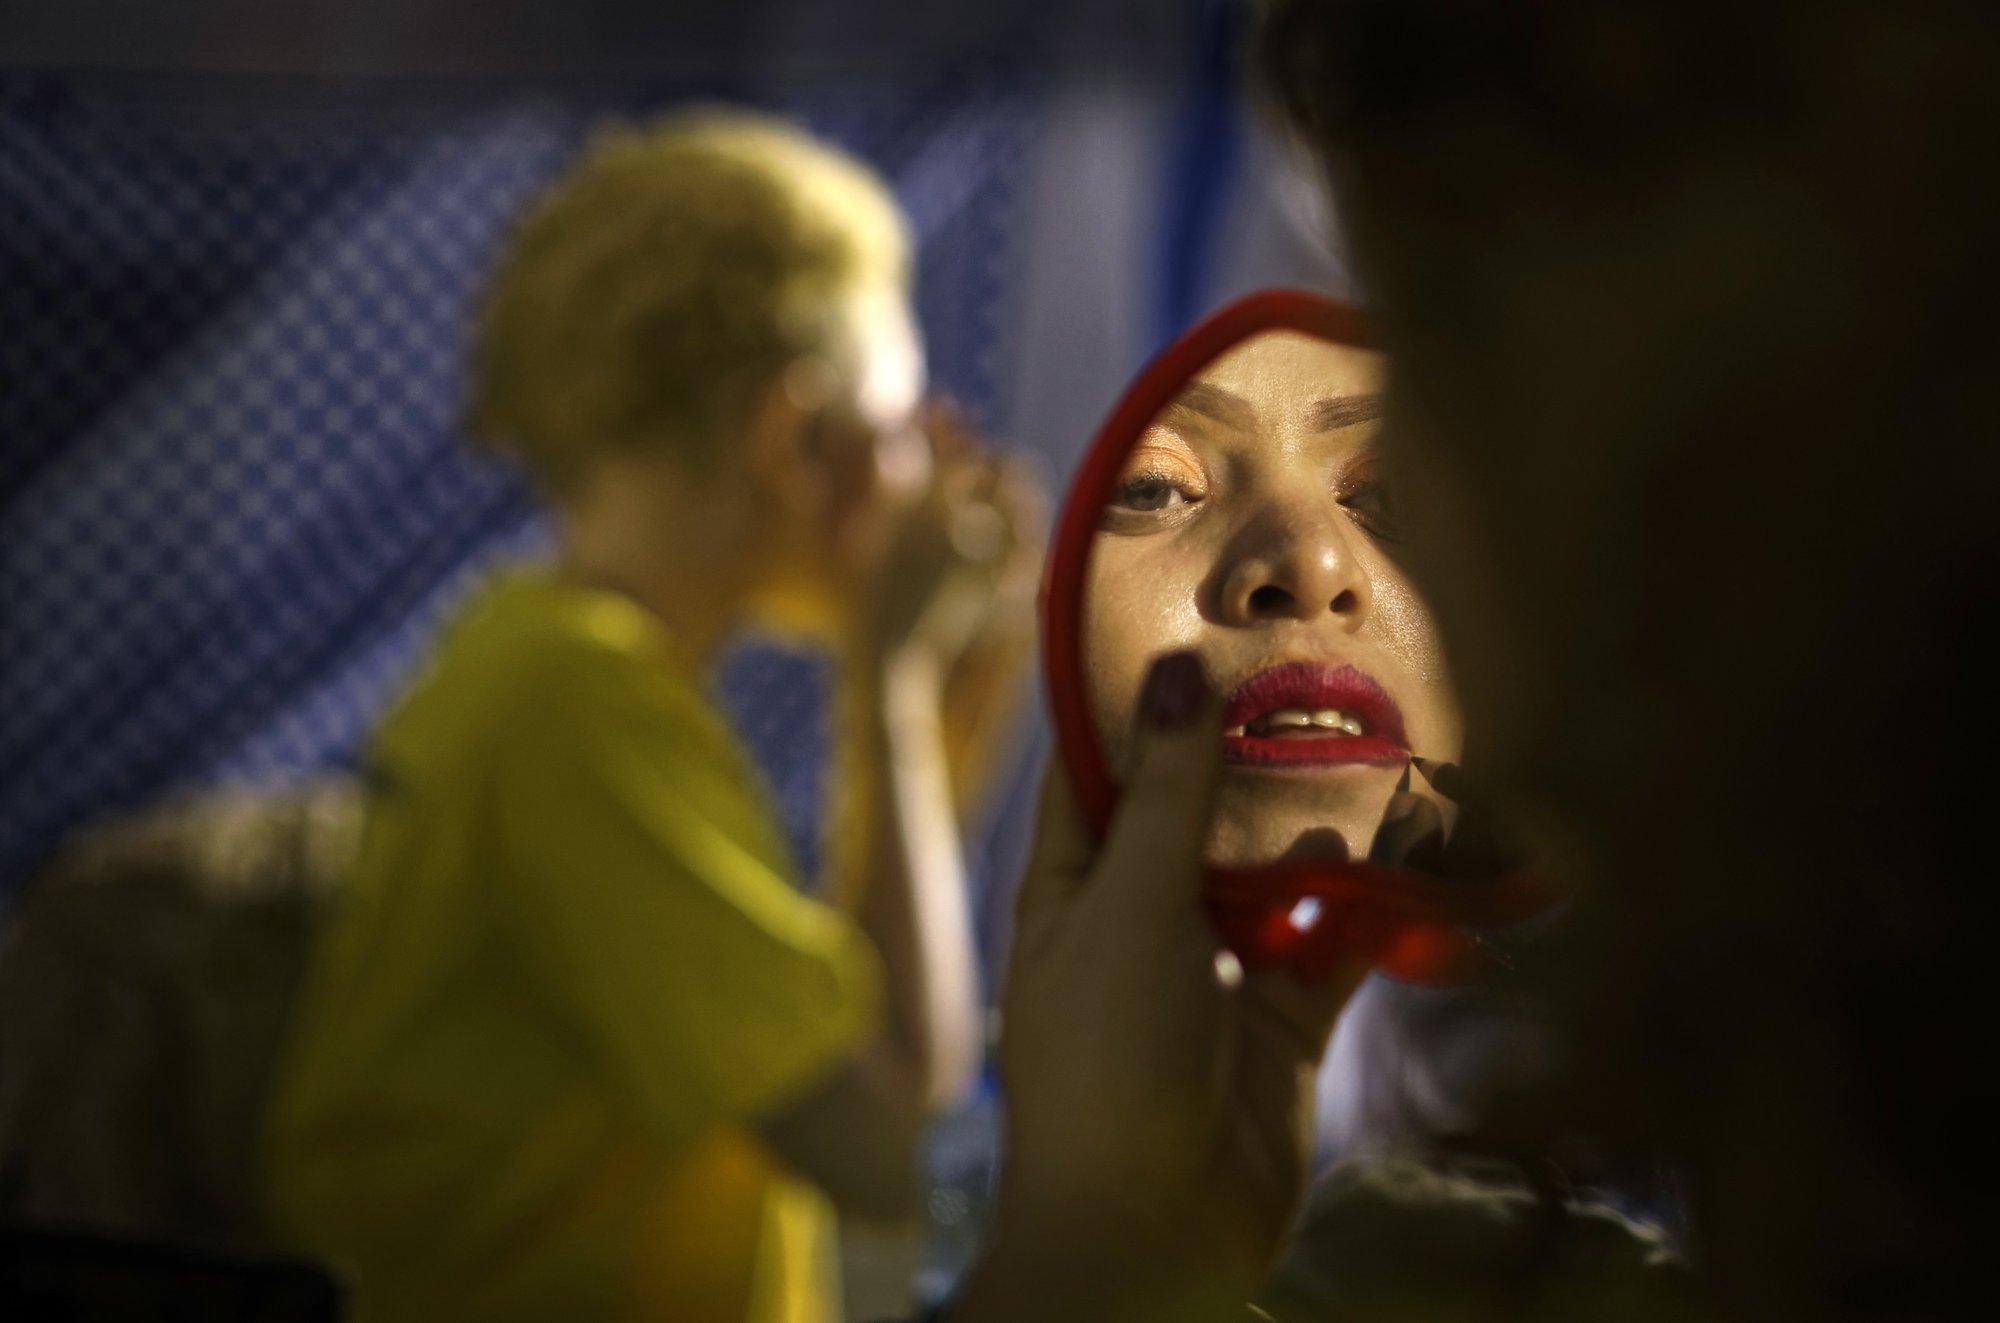 A contestant checks her makeup in a mirror as she prepares to perform in the Mr. & Miss Albinism East Africa contest, organized by the Albinism Society of Kenya, in Nairobi, Kenya on Friday, Nov. 30, 2018. Photo: AP